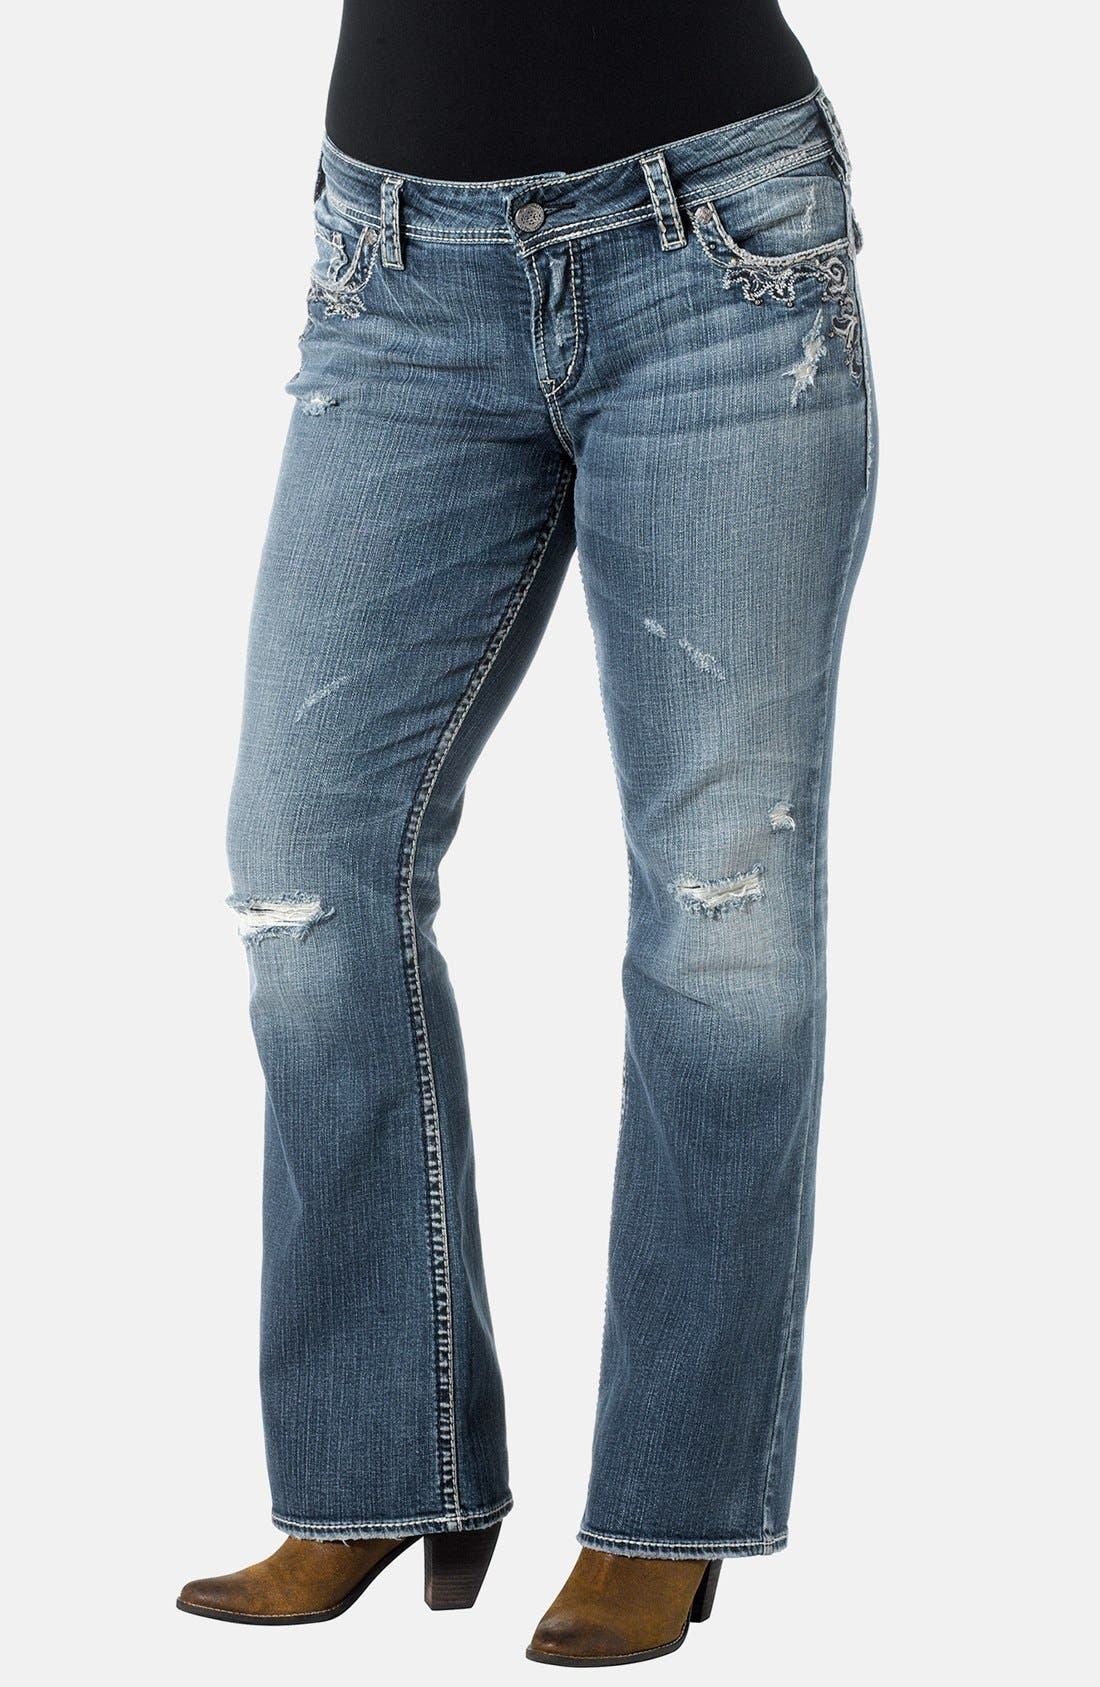 Main Image - Silver Jeans Co. 'Suki' Embroidered Pocket Bootcut Jeans (Indigo) (Plus Size)